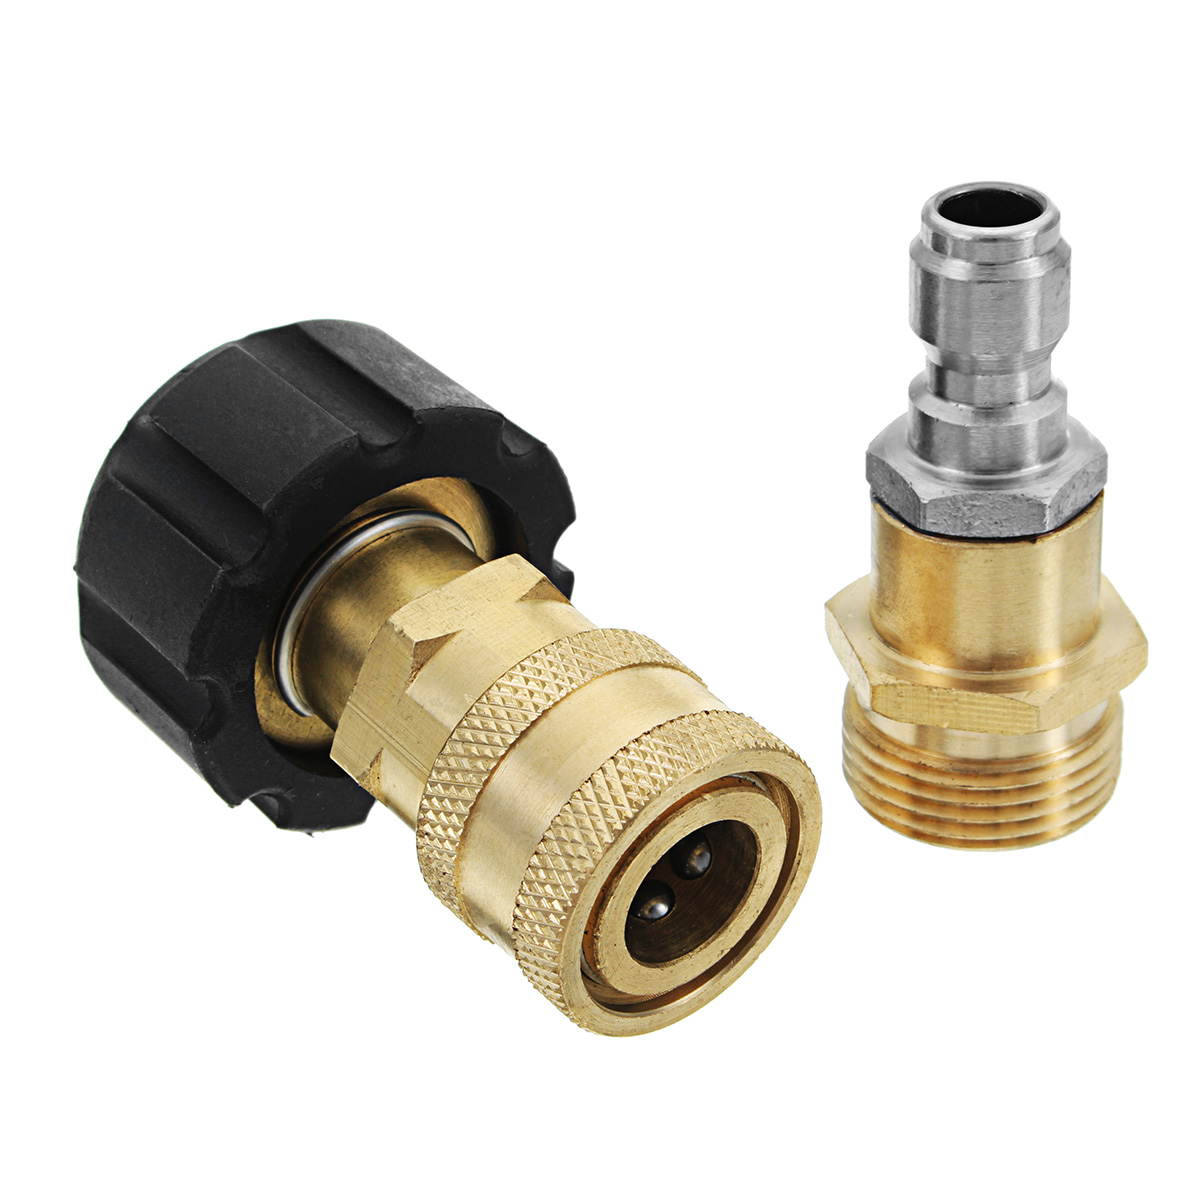 M22 Threaded Nozzle Quick Connect Connector Head For Foam High Pressure Washer Washing Machine